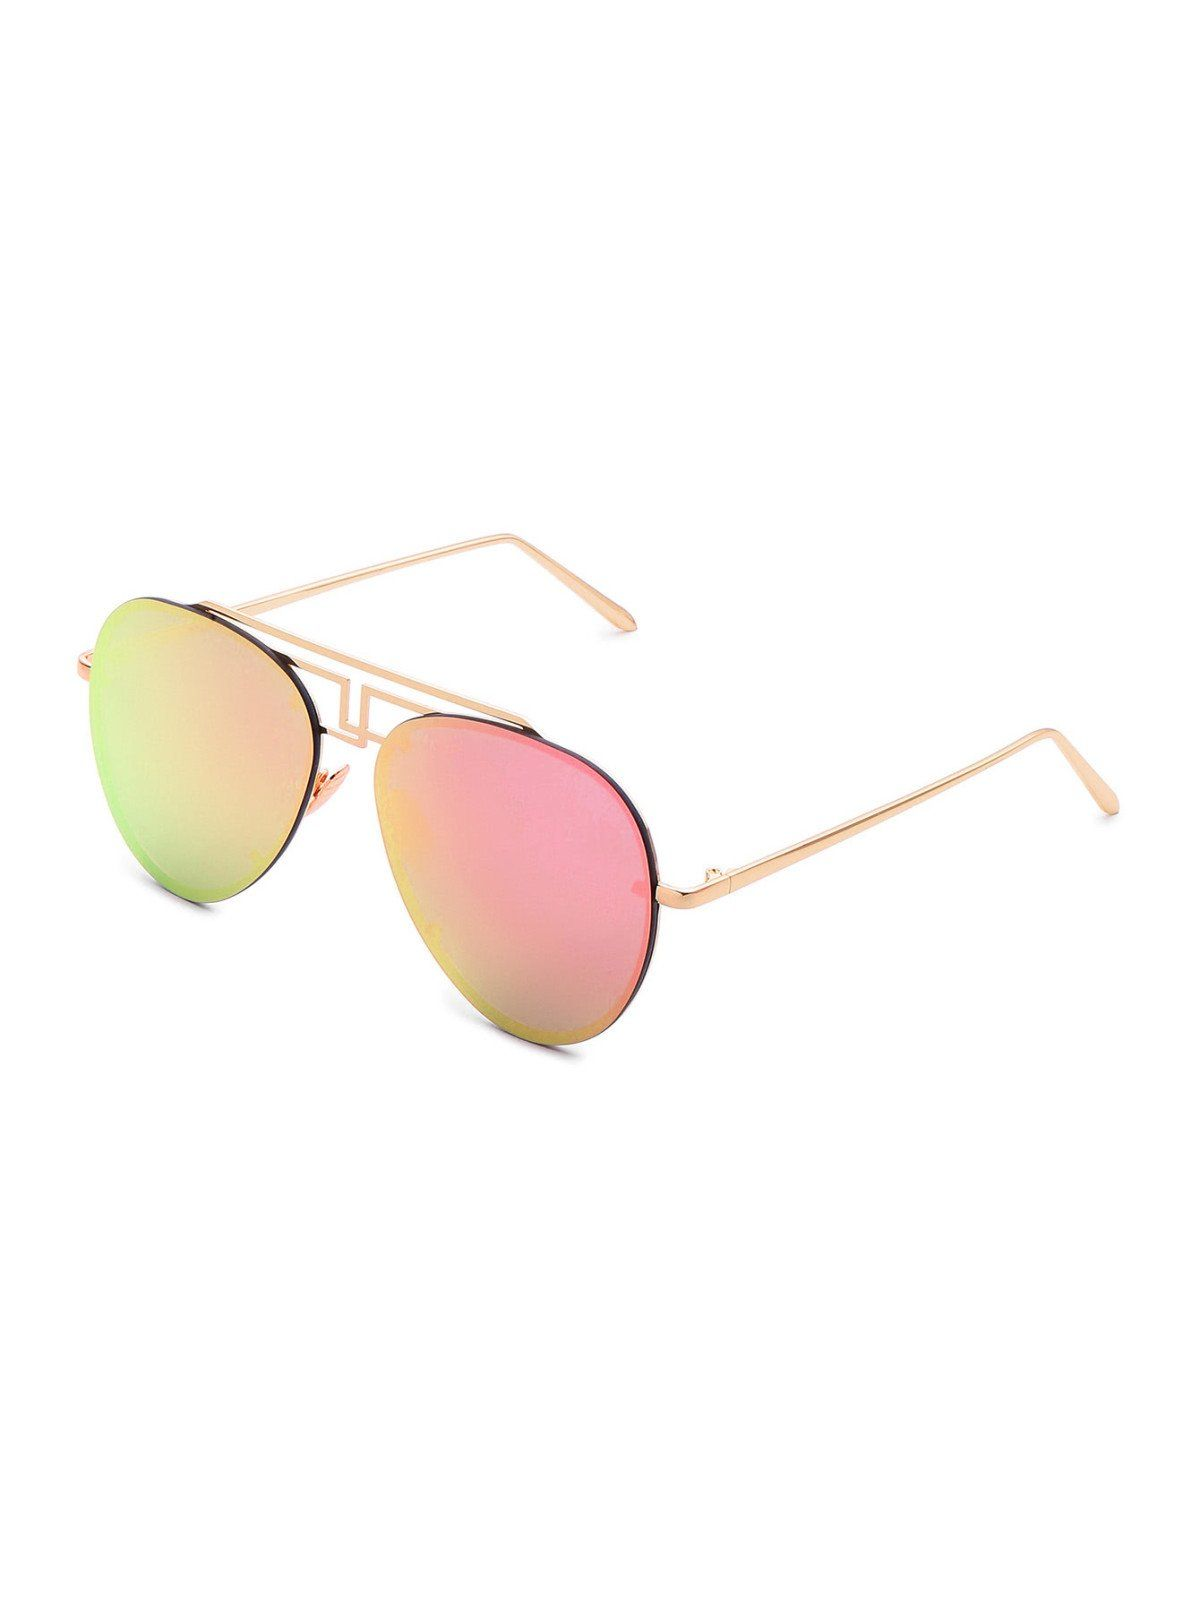 Etonnant Sunglasses By BORNTOWEAR. Asymmetrical Top Bar Rimless Aviator Sunglasses